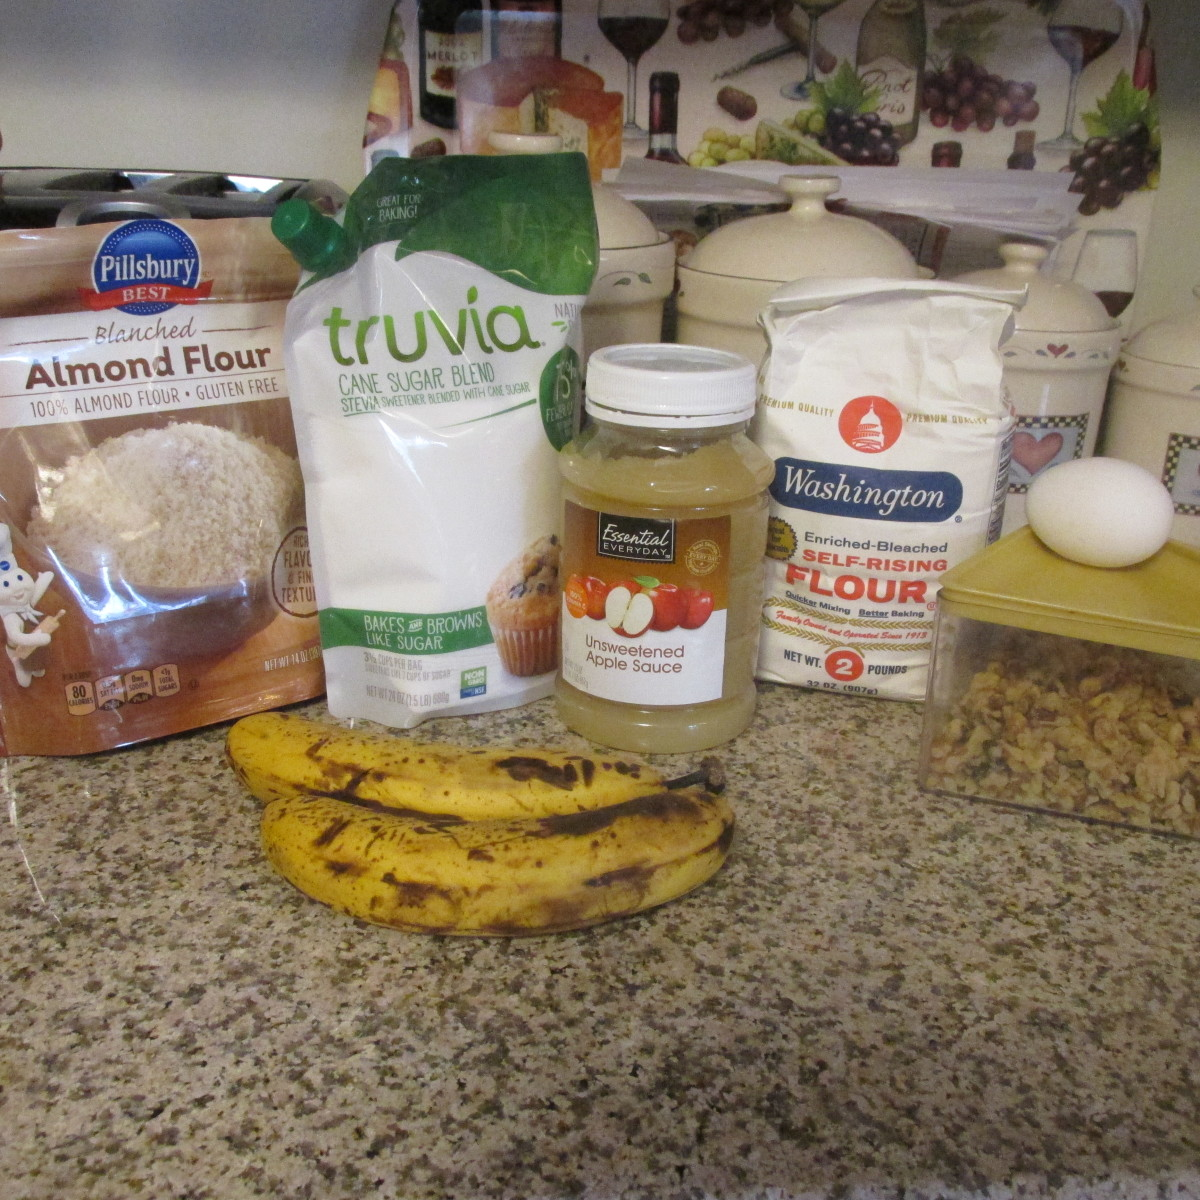 Ingredients for banana nut muffins